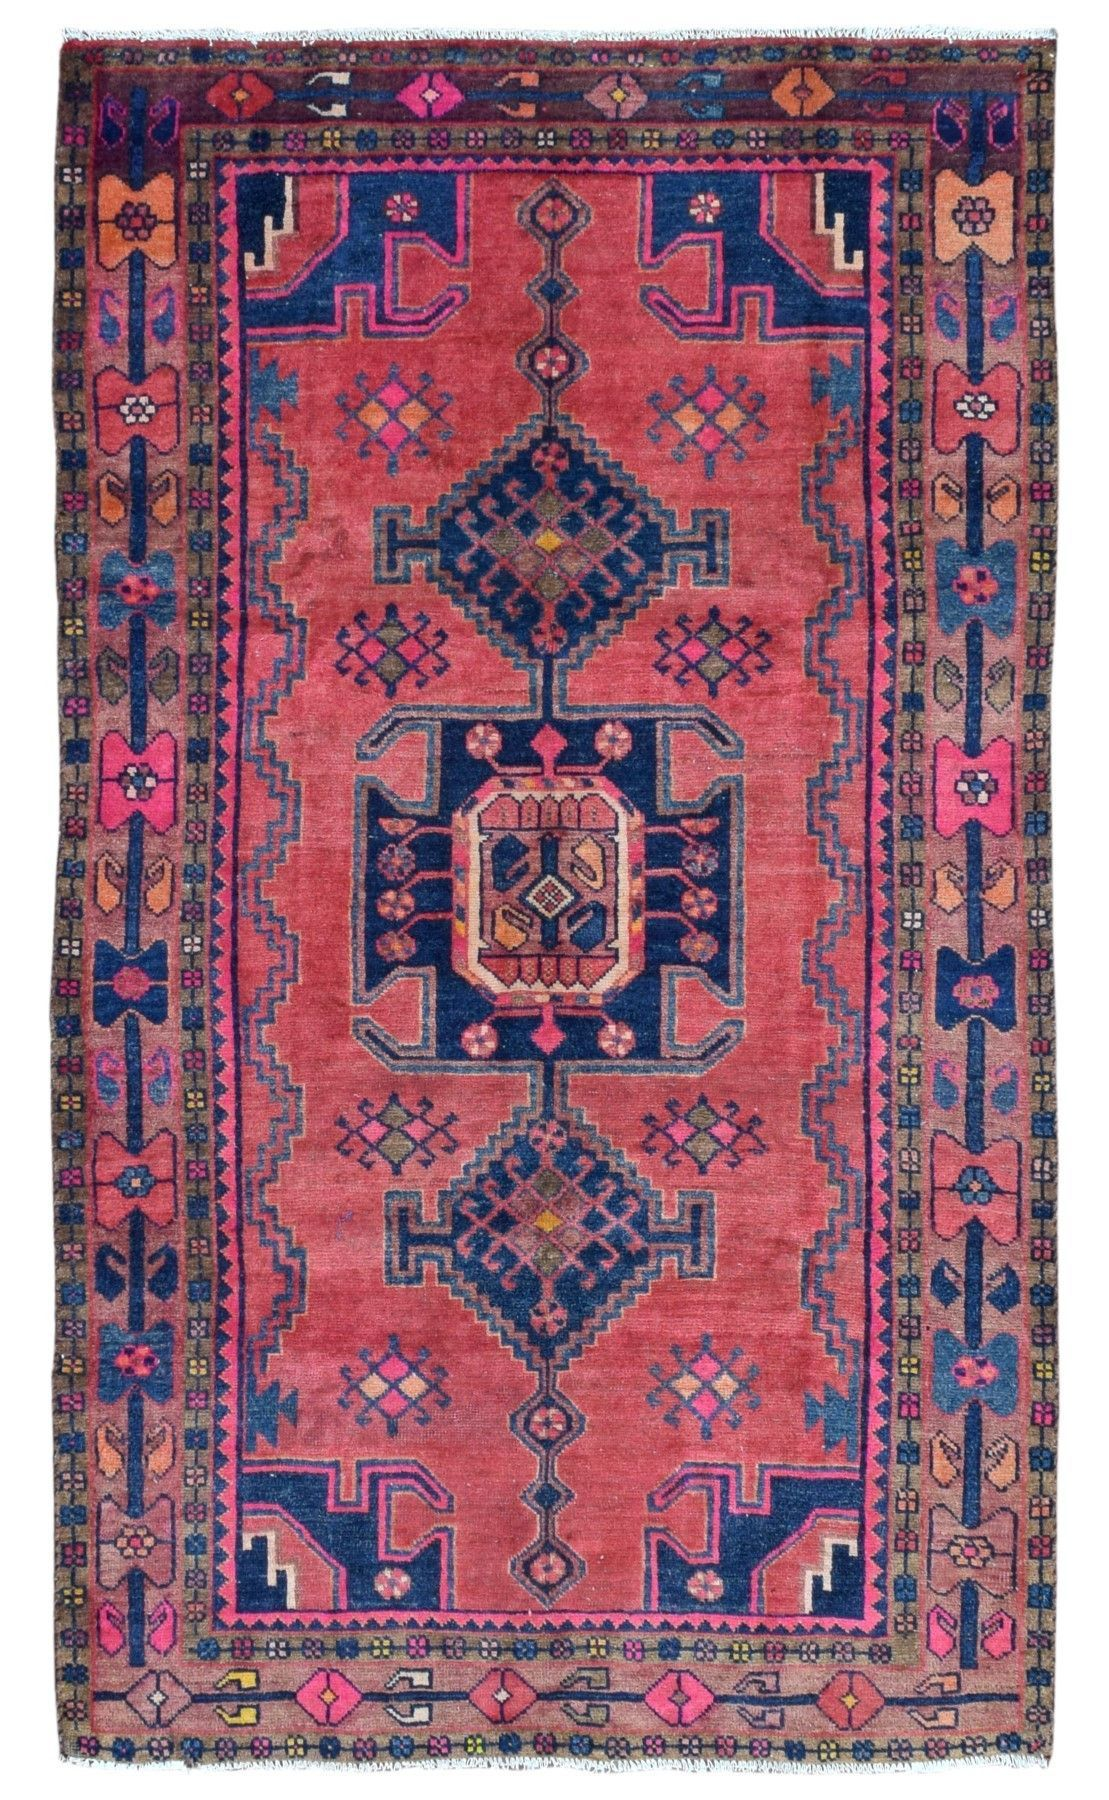 Design Hamadan Size 4 6x7 10 Color Pink Blue Multi Colored Knot Technique Blue Persian Rug Oriental Runner Rug Rug Runner